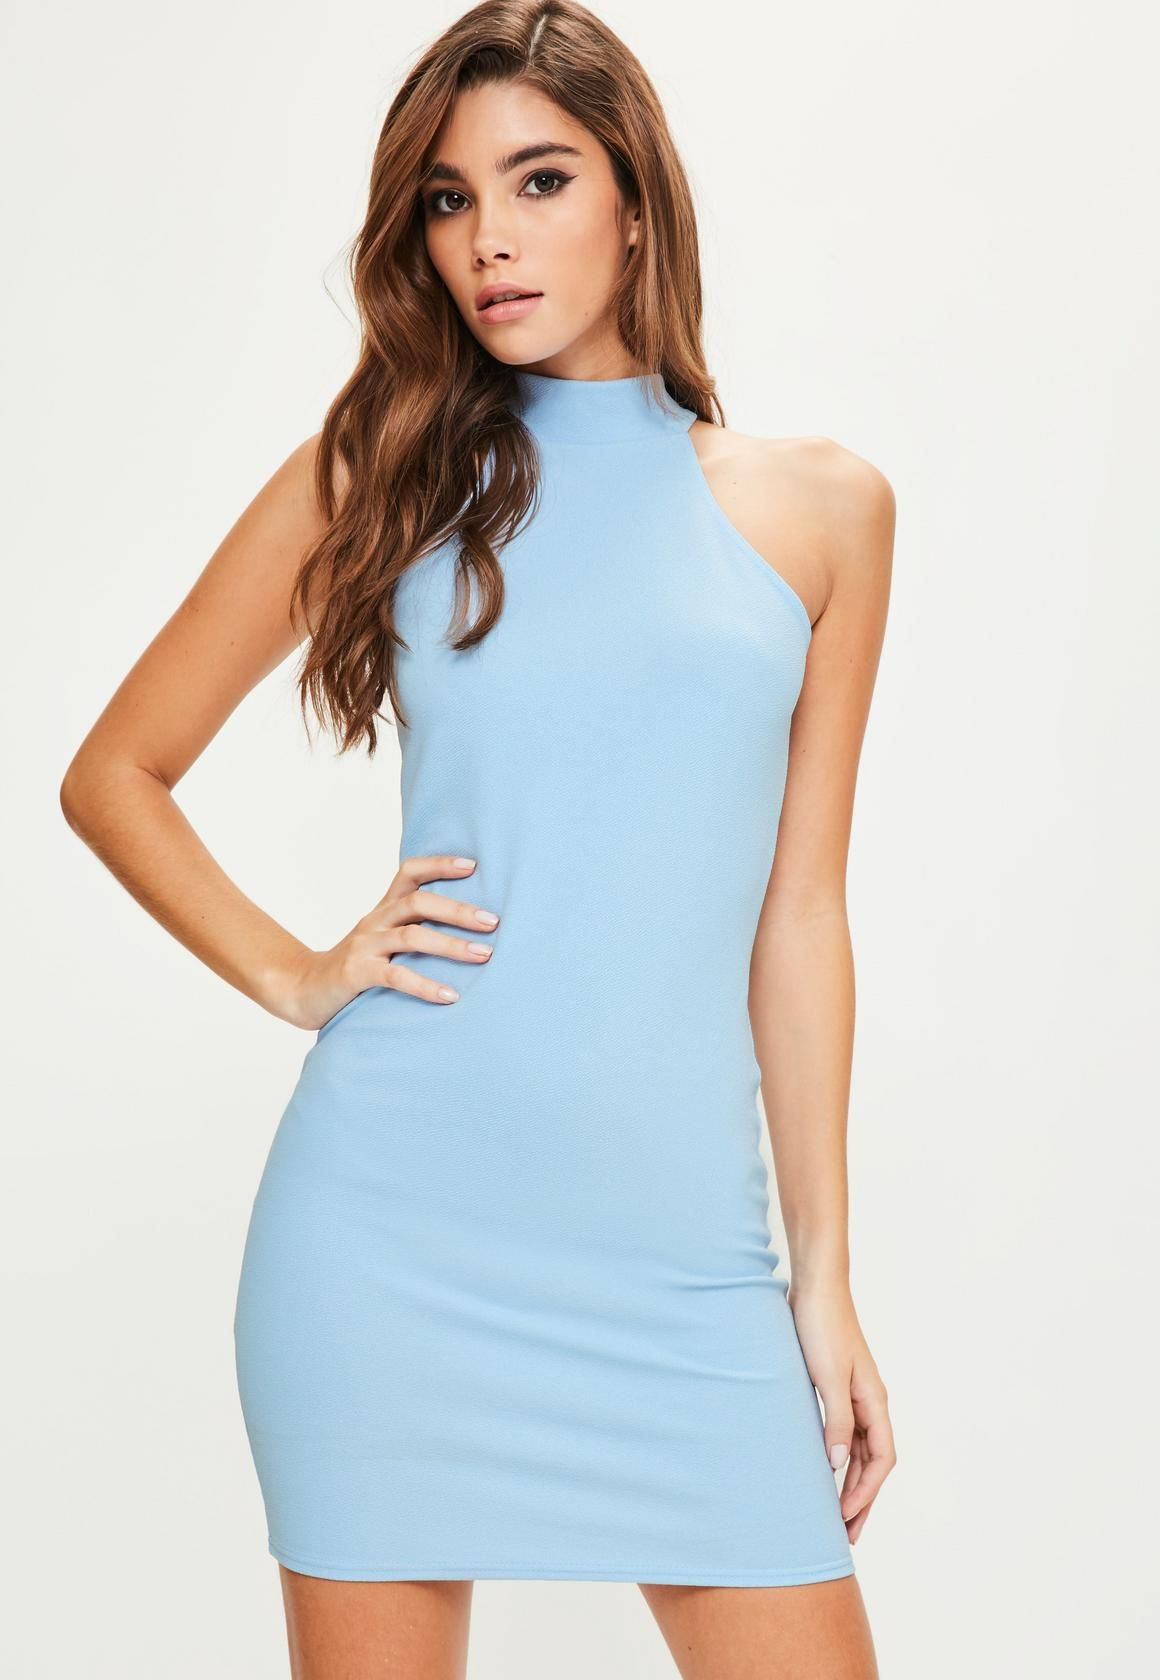 81c73021e4af Missguided - Blue High Neck Bodycon Dress | Dream Closet in 2019 ...